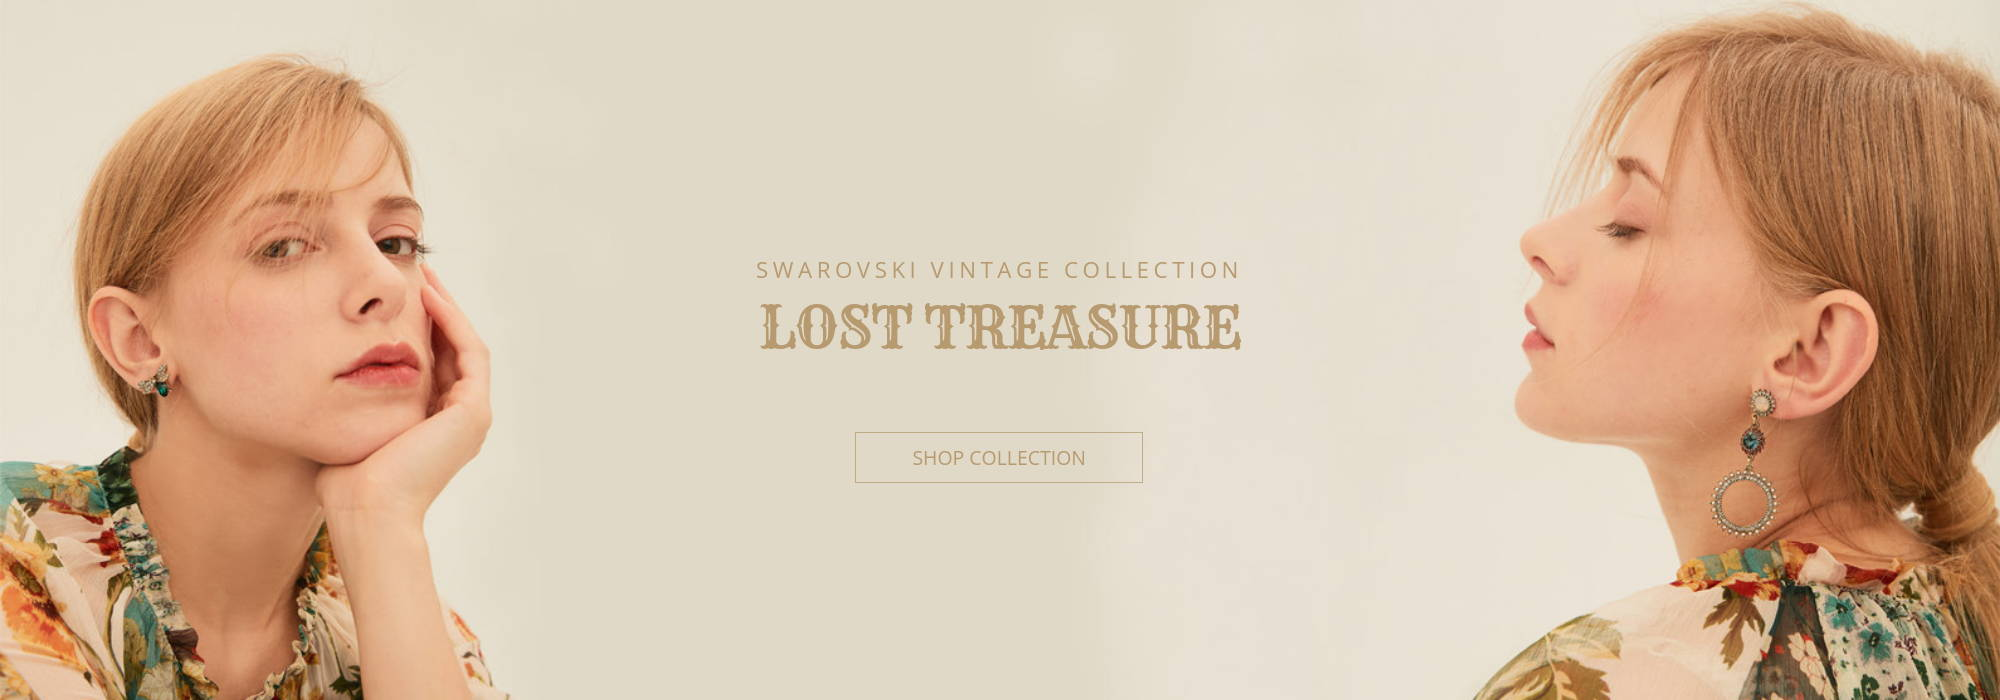 withbling-with-bling-homepage-lost-treasure-collection-banner